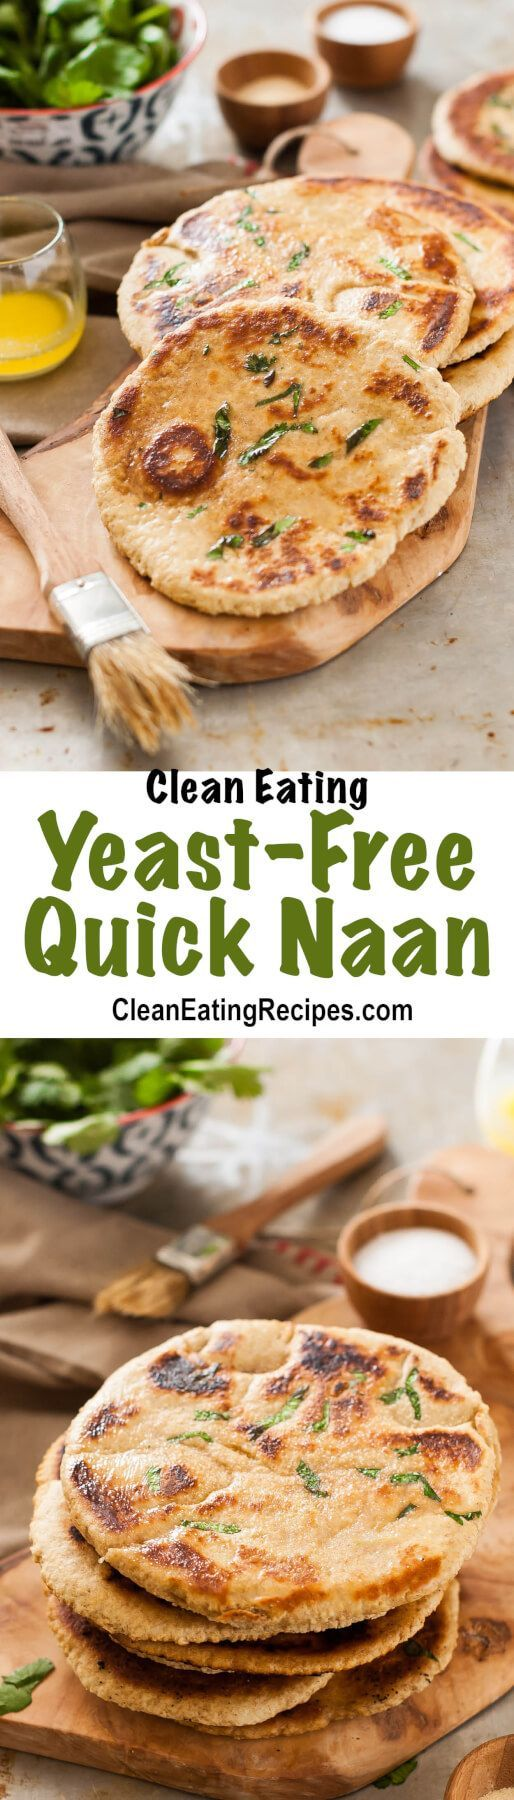 Quick and Easy Einkorn and Spelt Naan | Recipe | Food ...